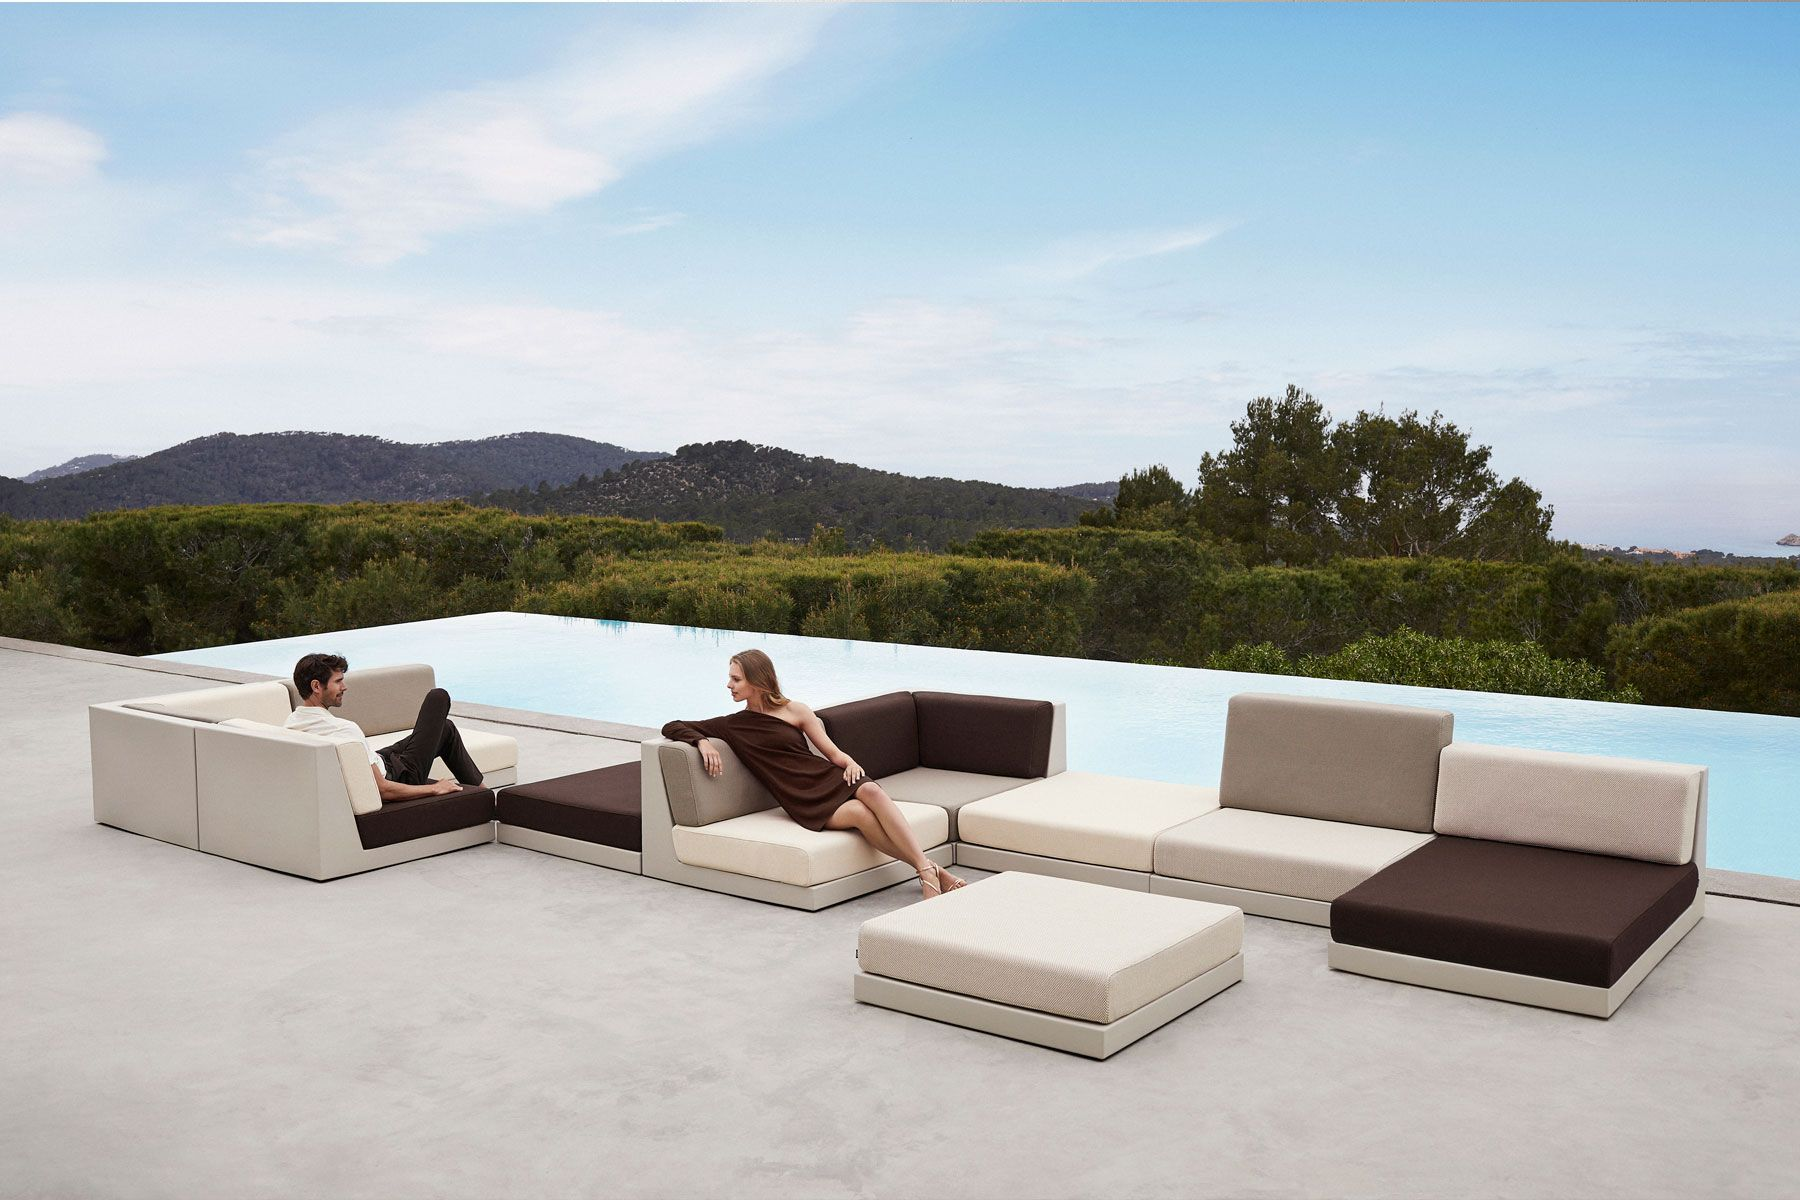 We Also Offer Outdoor Patio Furniture Custom Options